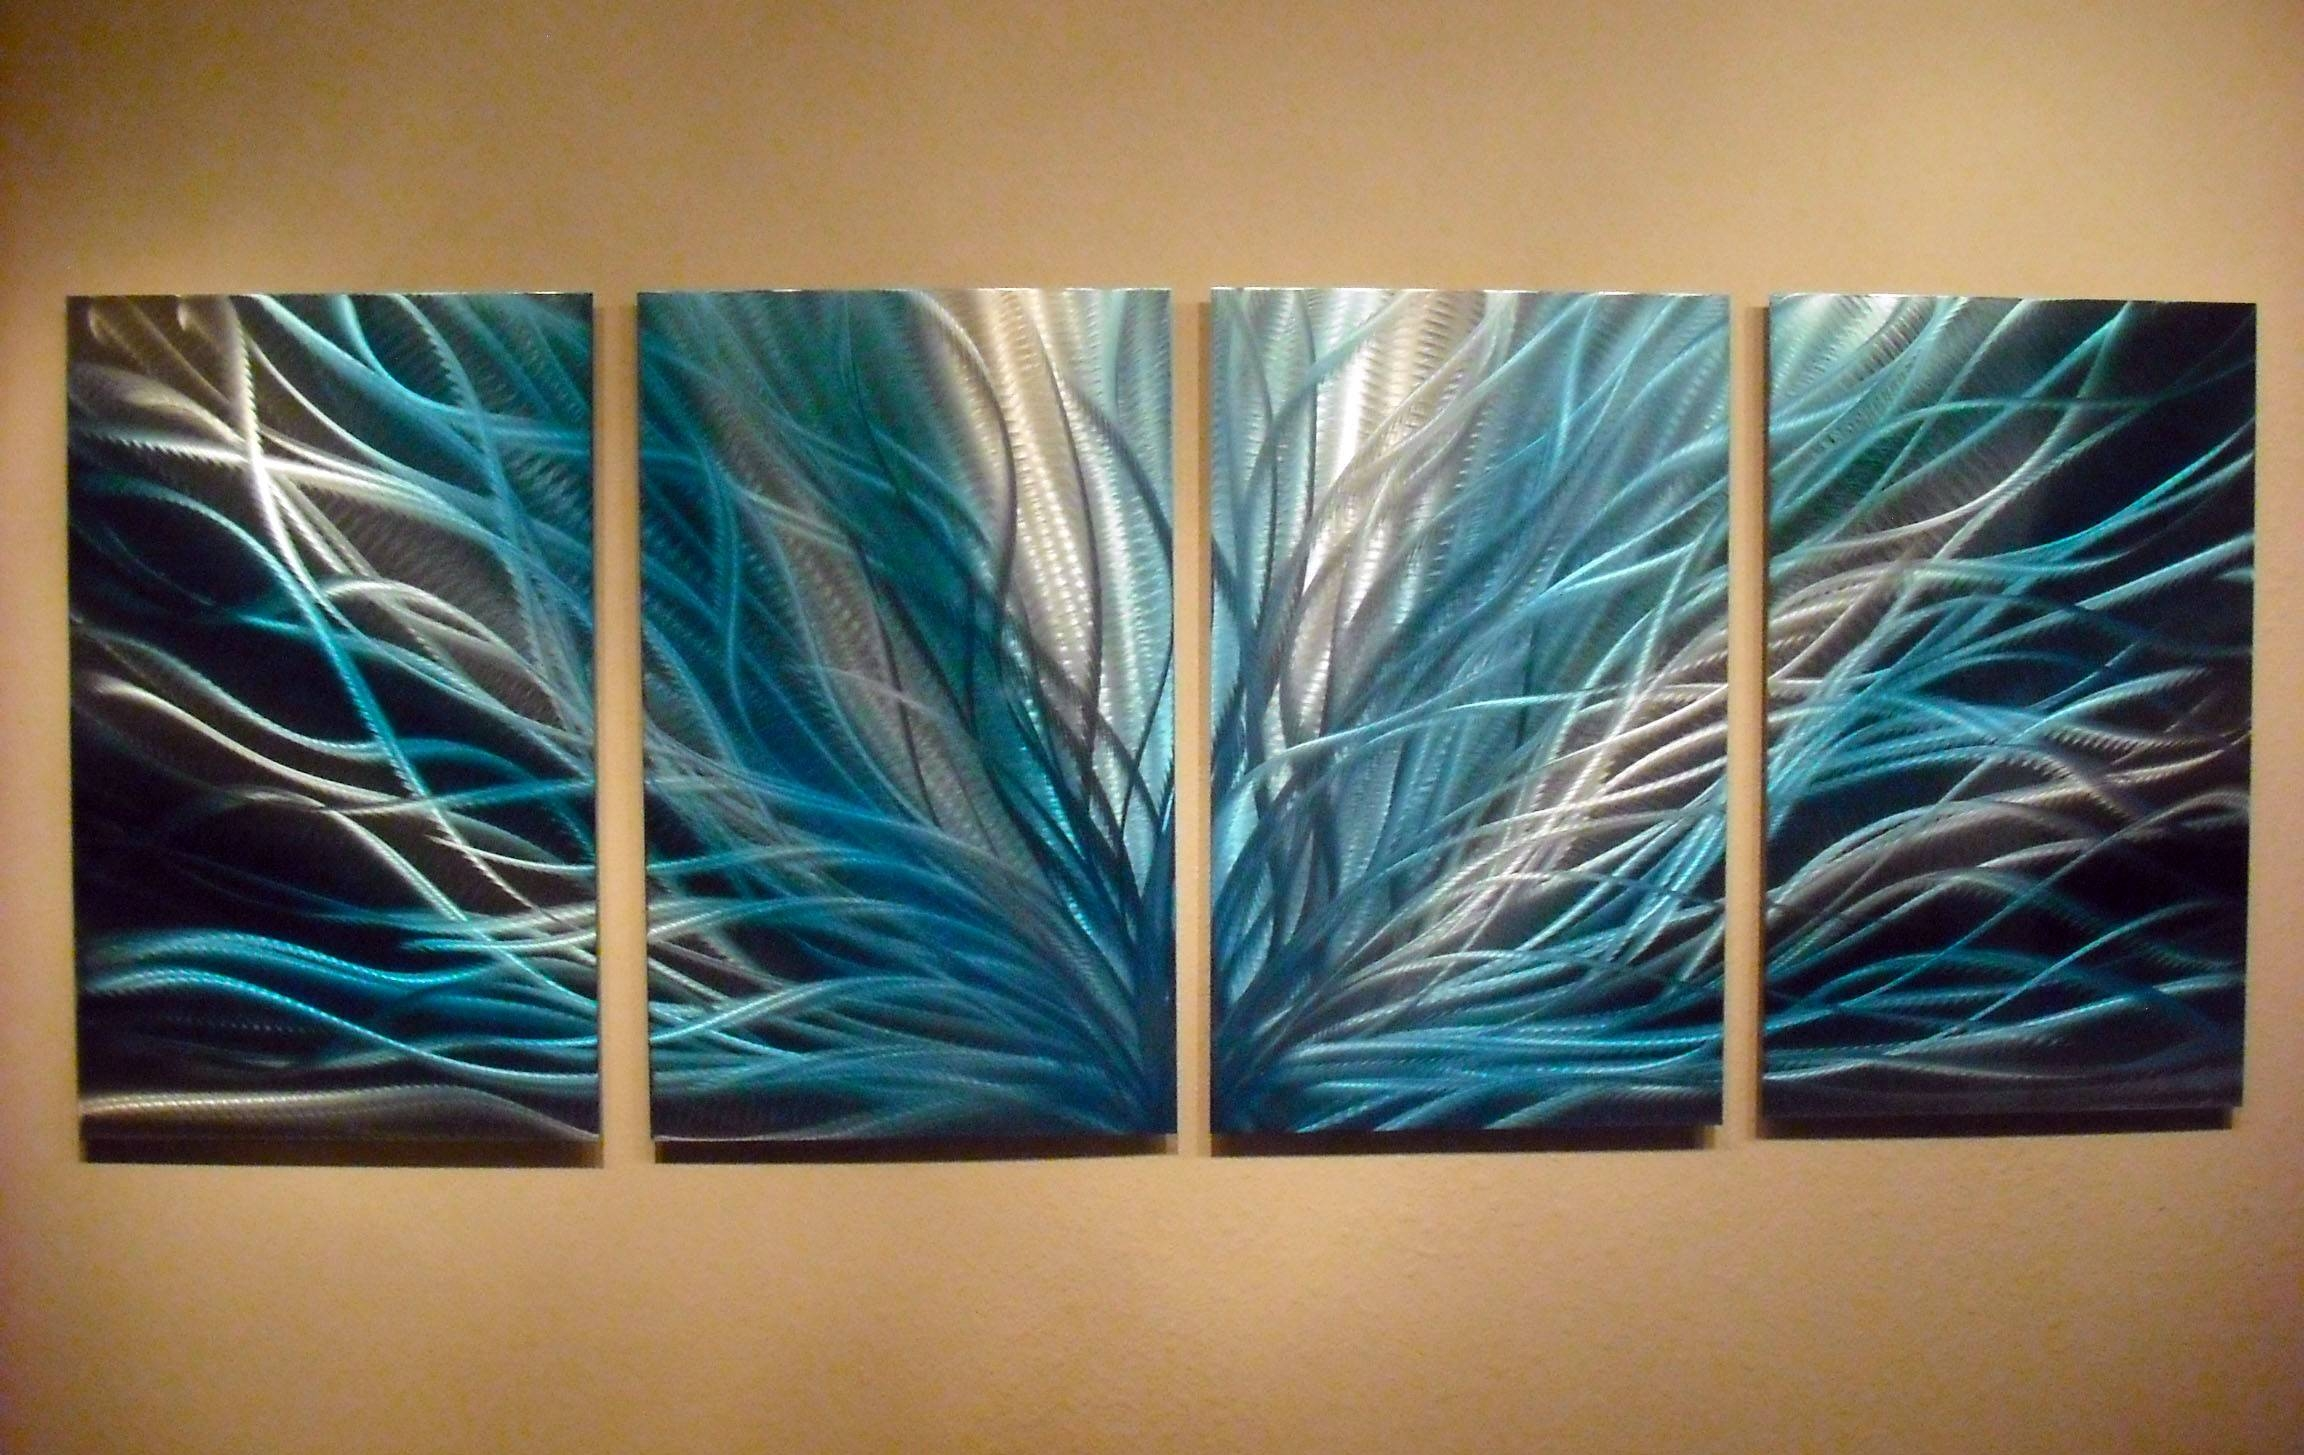 Radiance In Blues  Abstract Metal Wall Art Contemporary Modern For Best And Newest Abstract Metal Wall Art (Gallery 1 of 20)